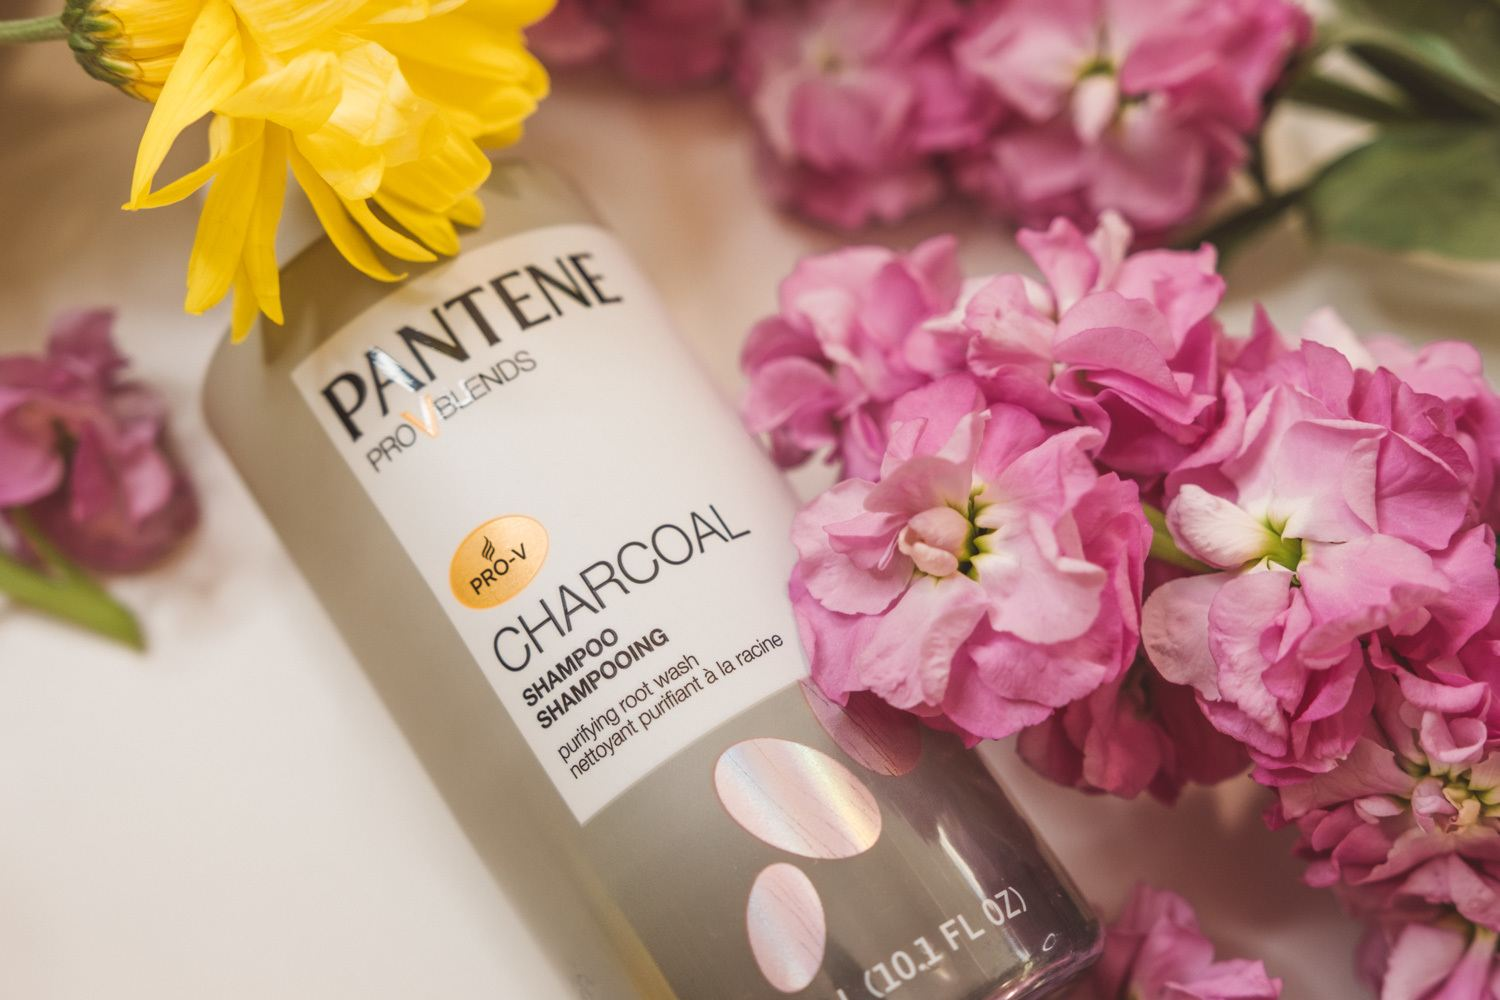 Pantene Charcoal Collection Review